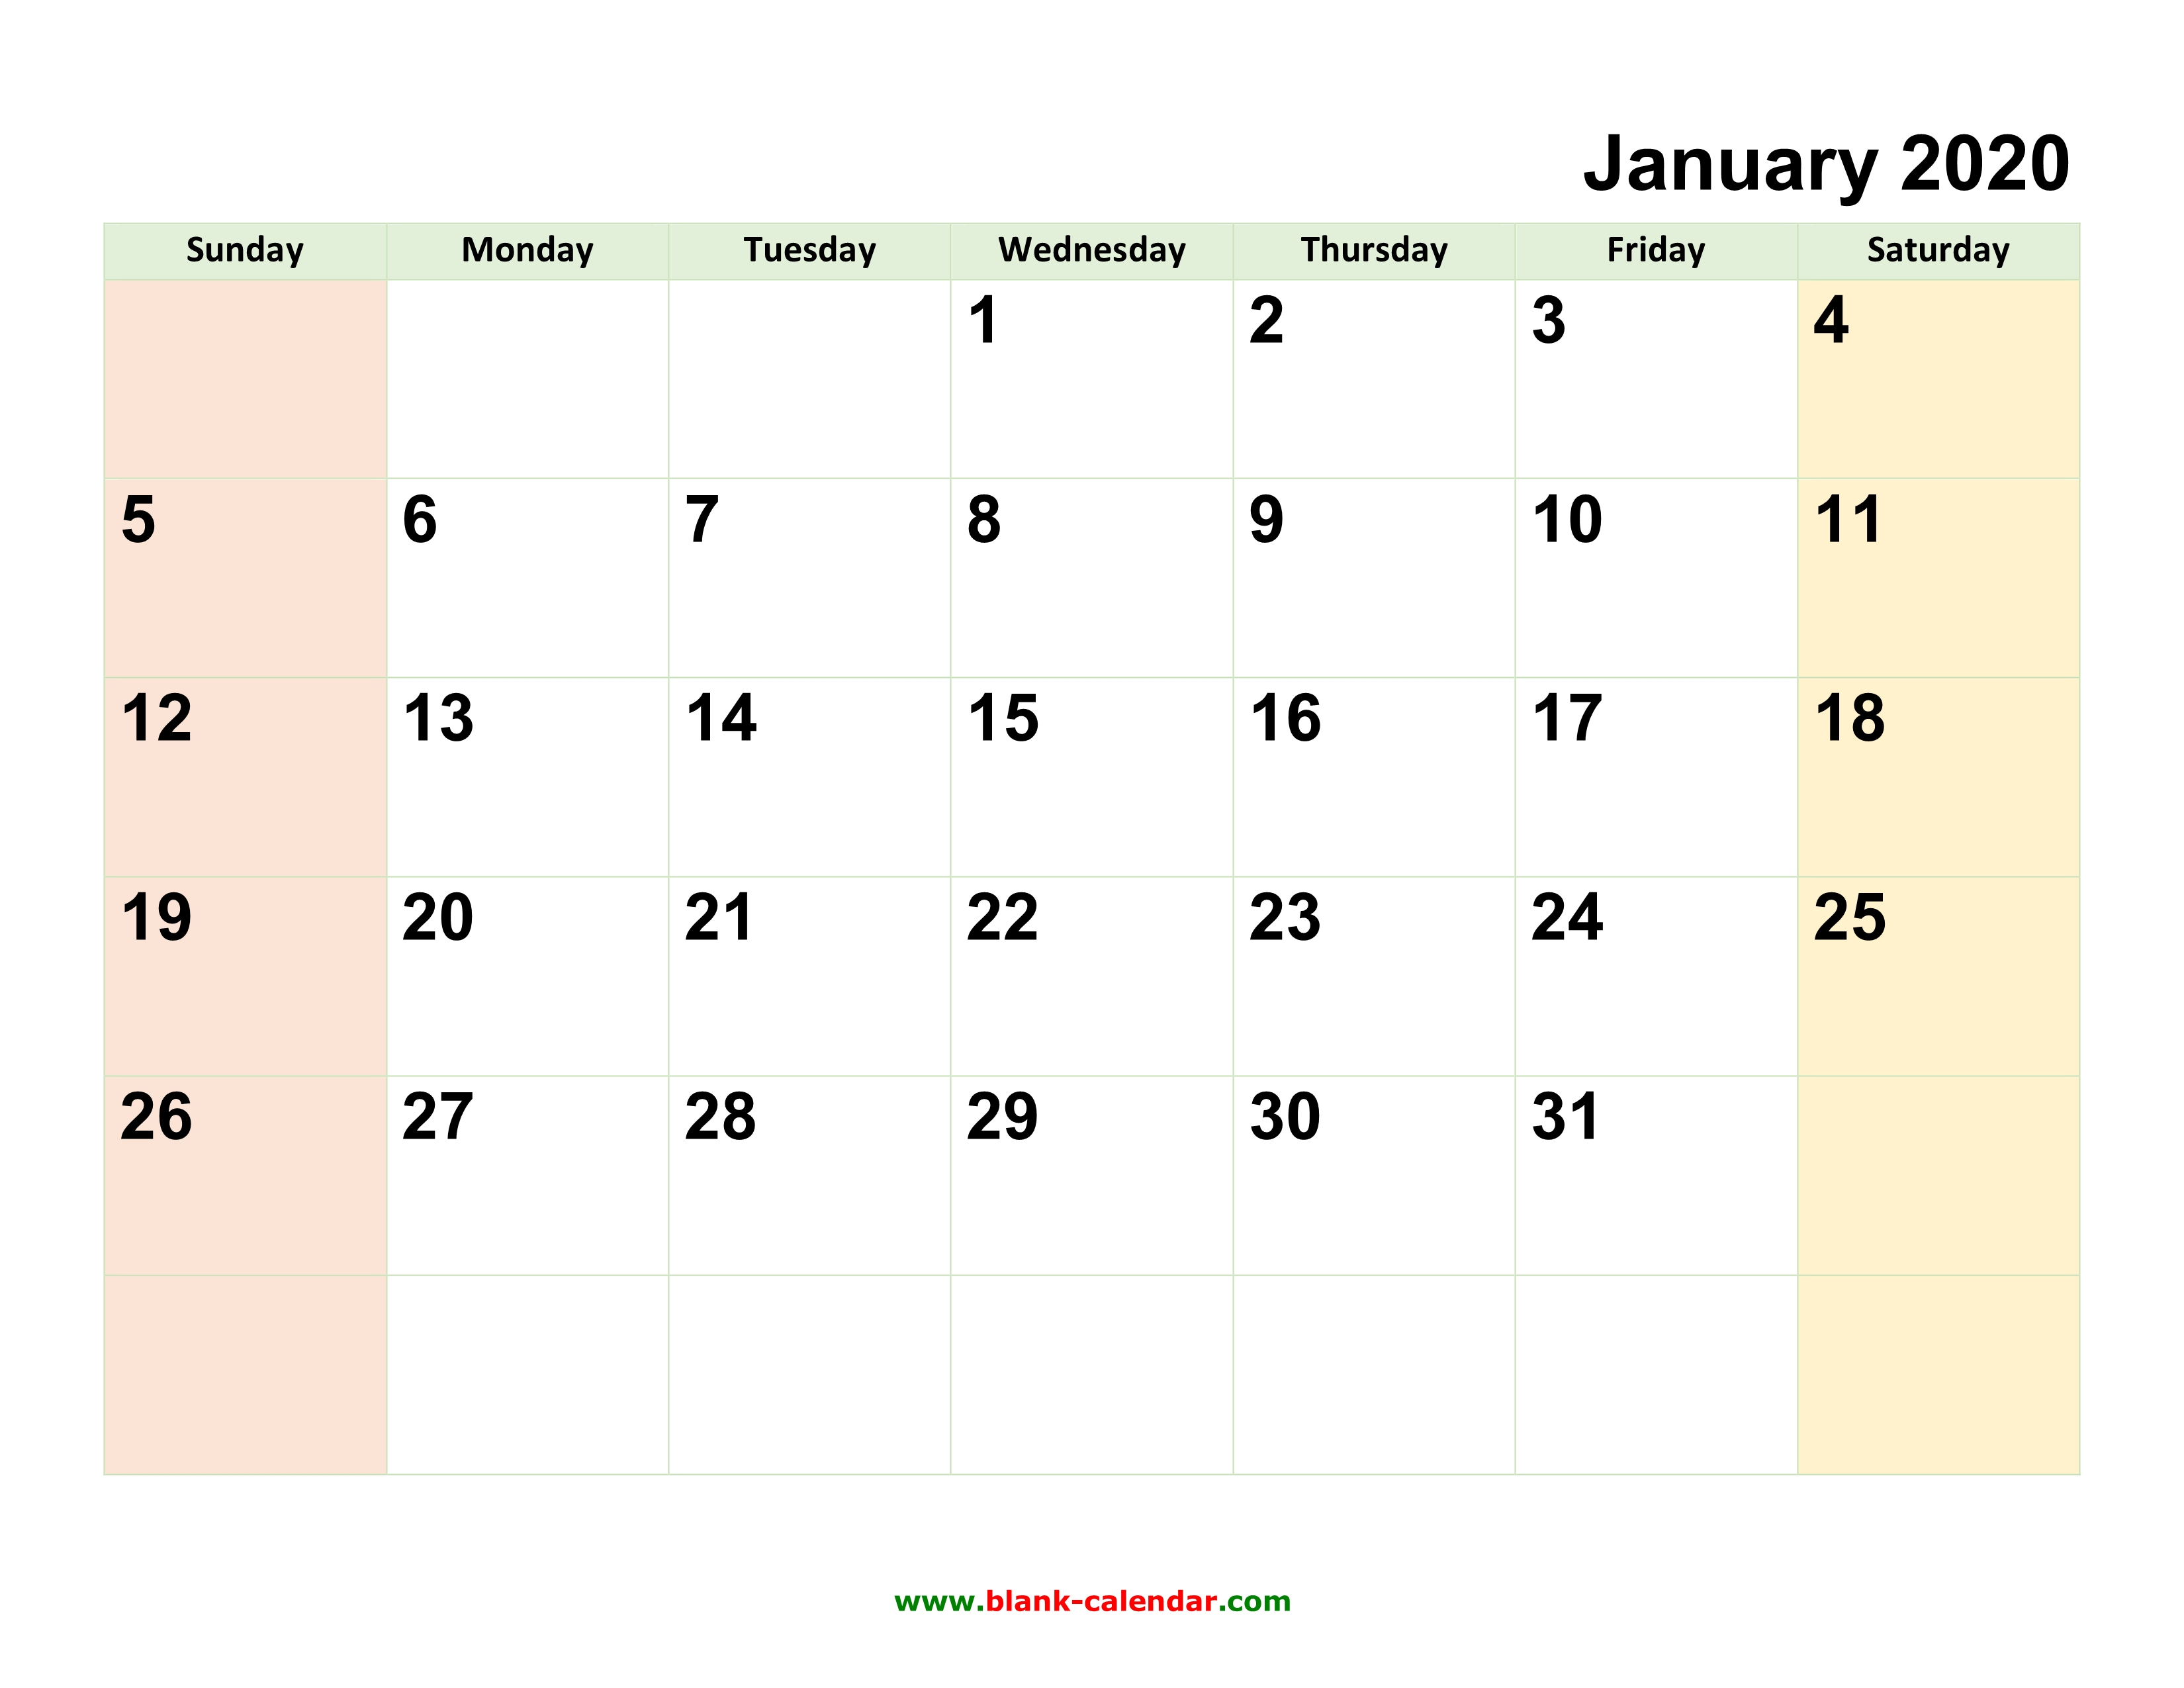 Monthly Calendar 2020 | Free Download, Editable And Printable with 2020 Calender I Can Edit